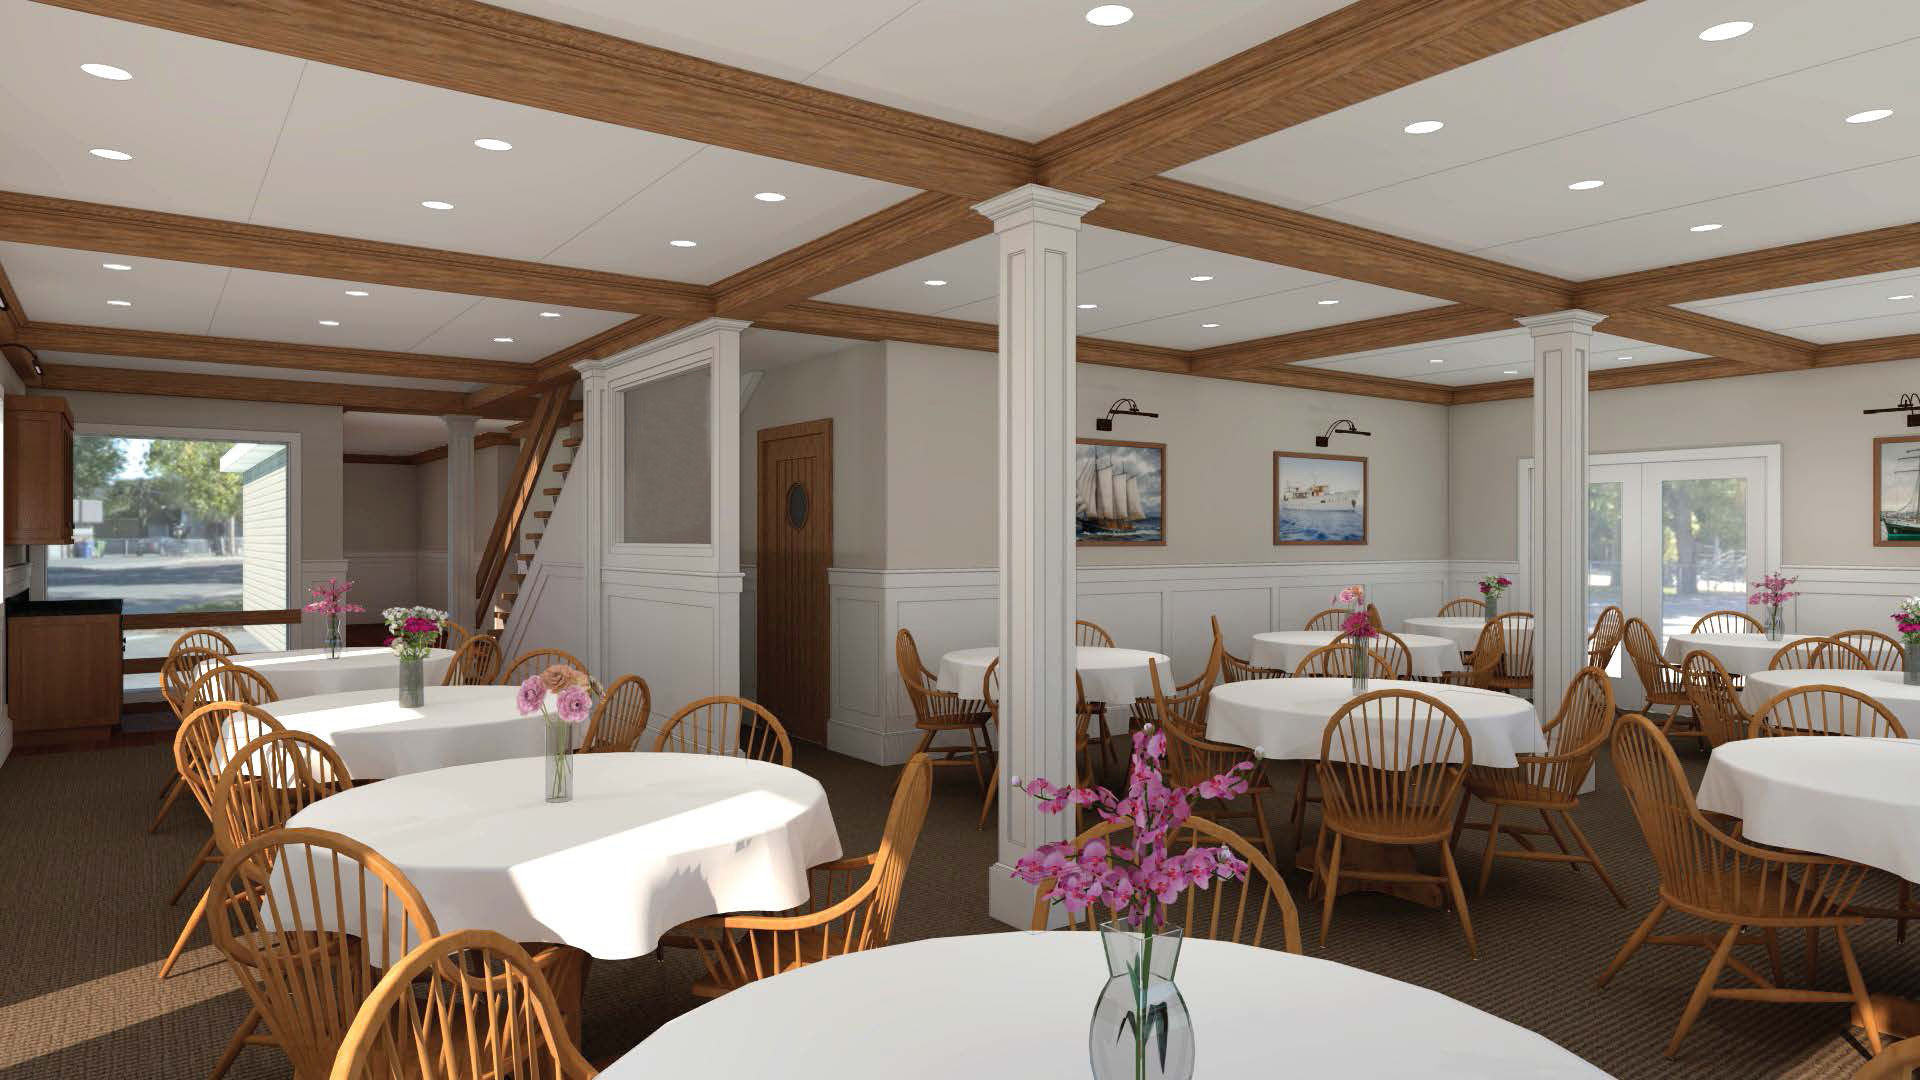 Rendering of Dining Room Renovation